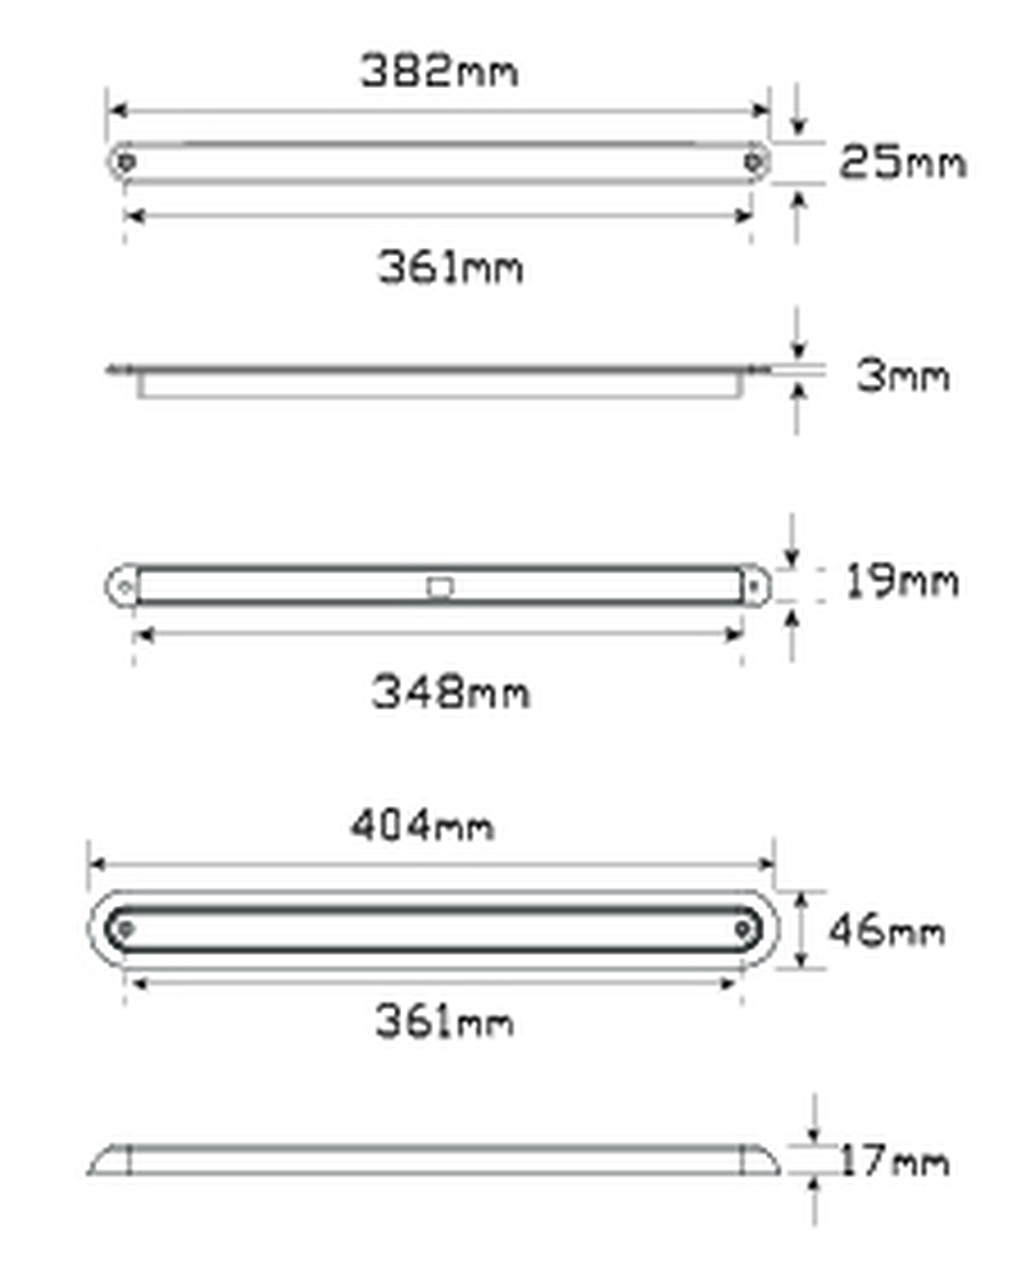 Line Drawing - 380CR12 - Stop, Tail Strip Light. Low Profile. Slimline Design. Chrome Bracket. 12v Only. Single Pack. 5 Year Warranty. Autolamp. Ultimate LED.